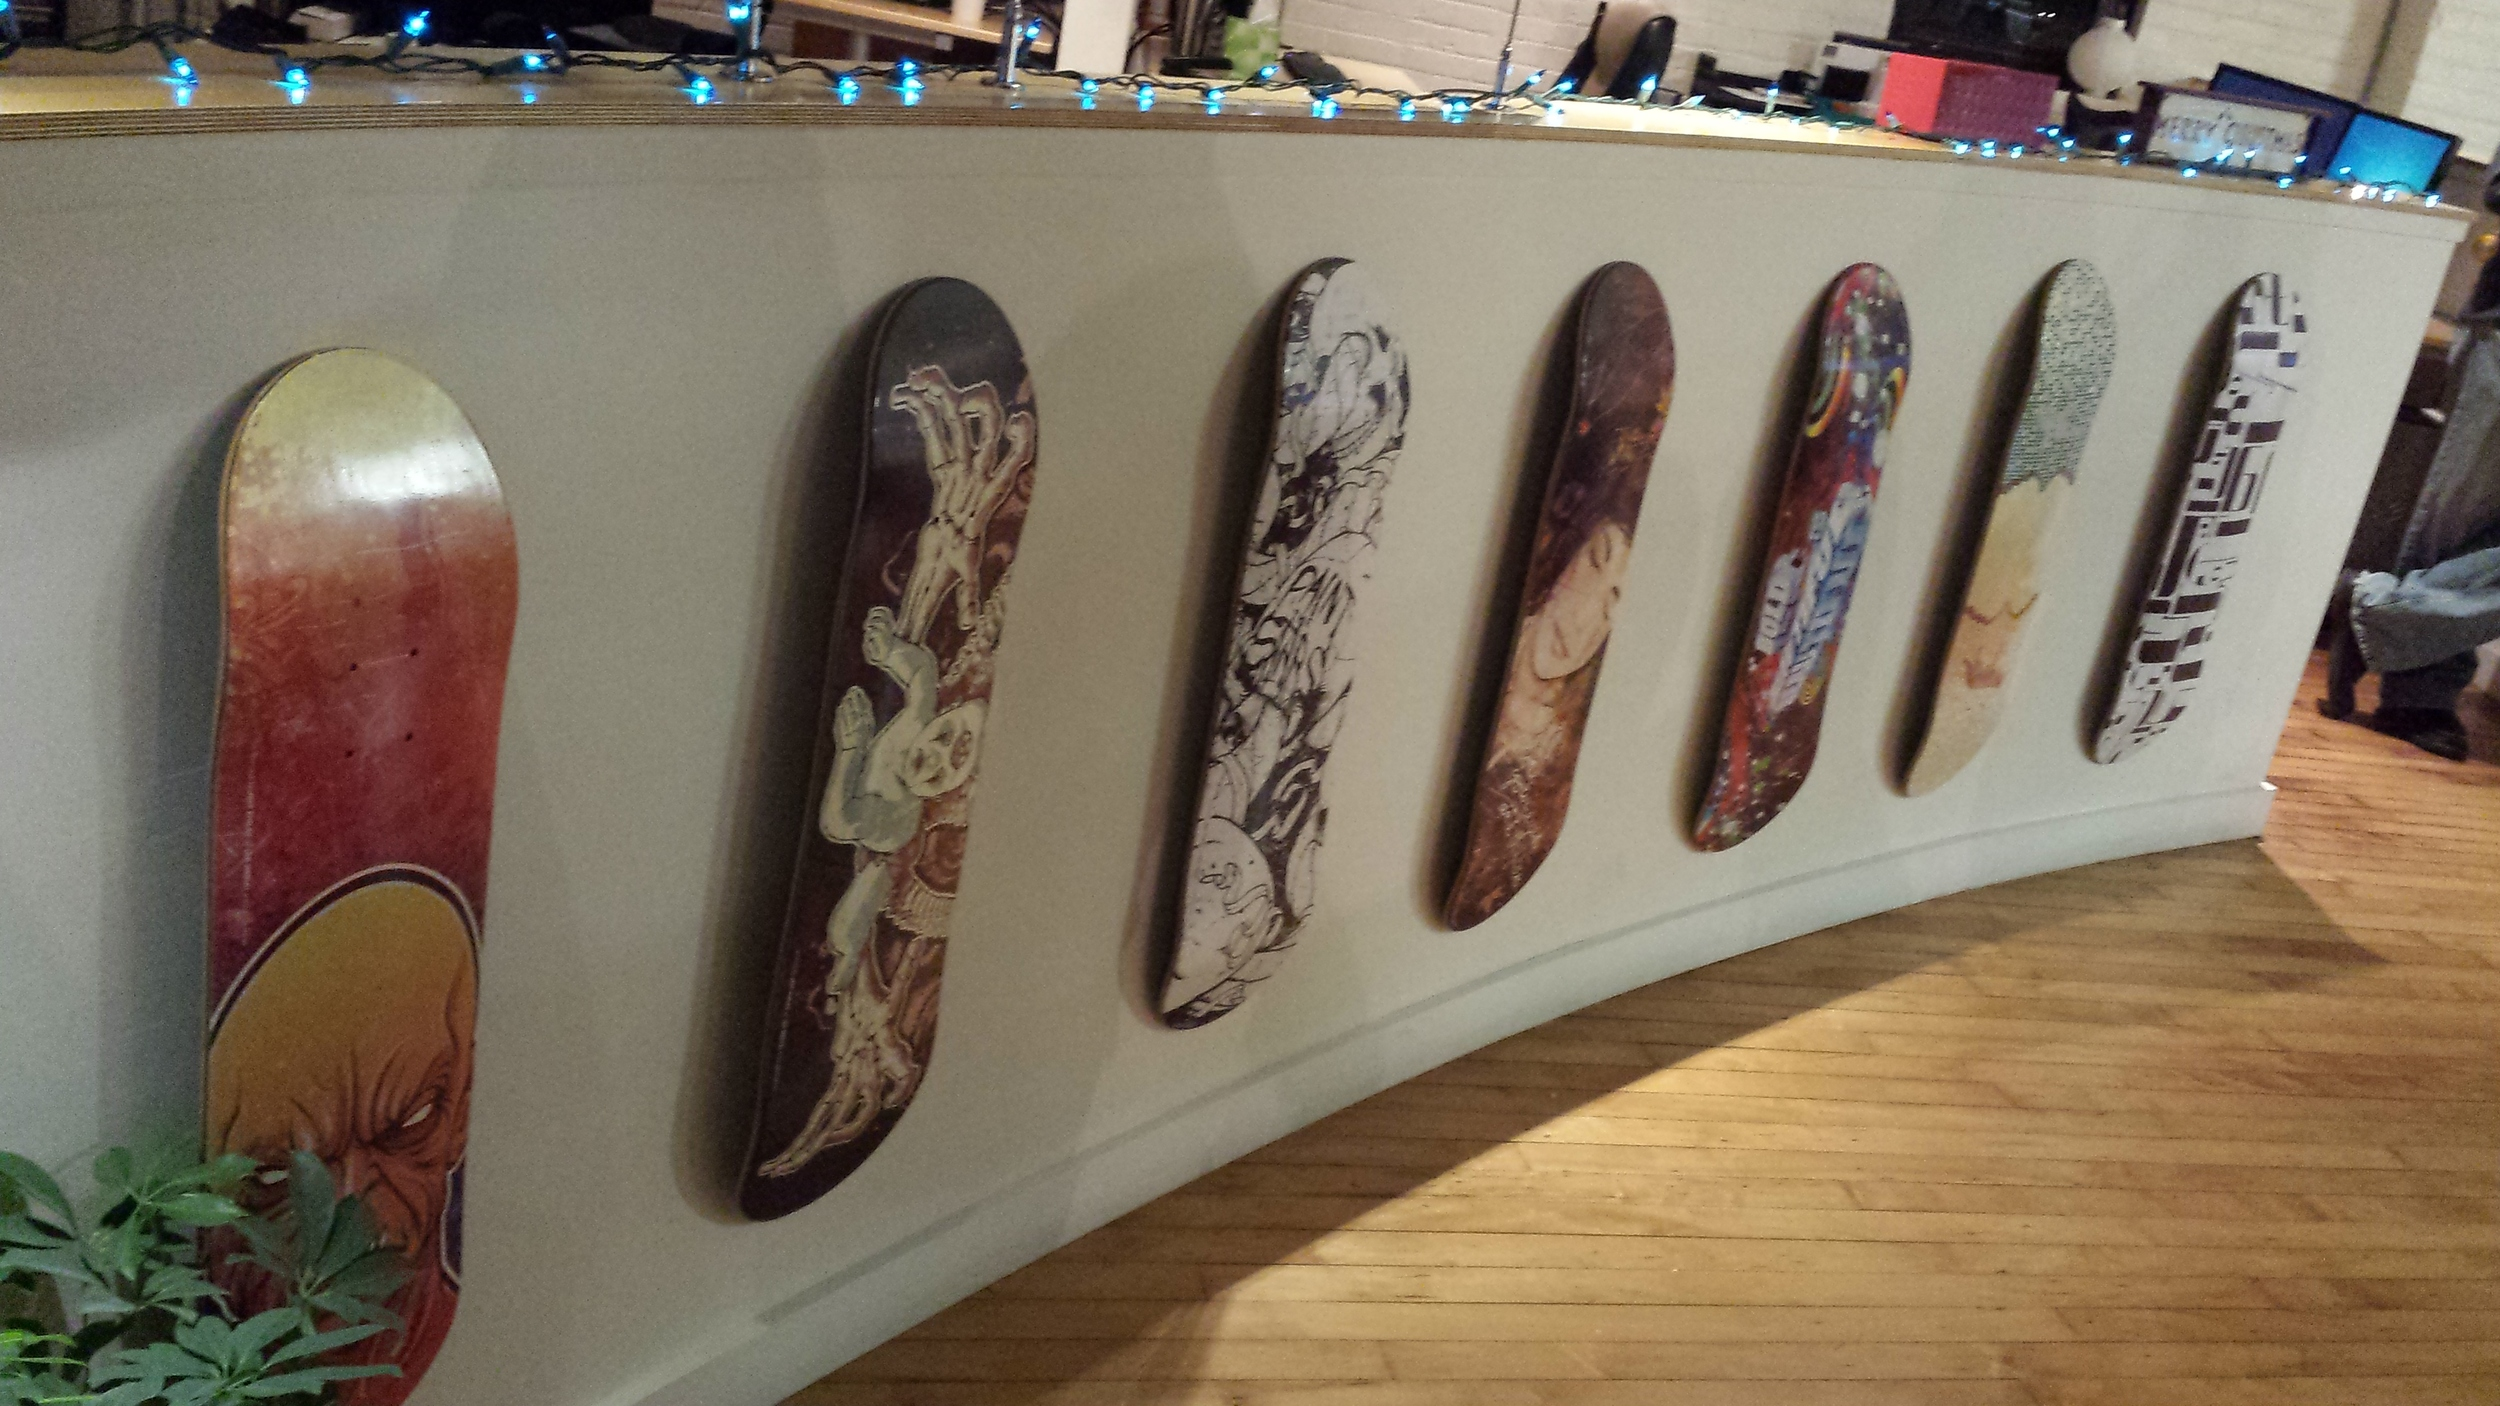 Awesome boards by Go Media's Jeff Finley.